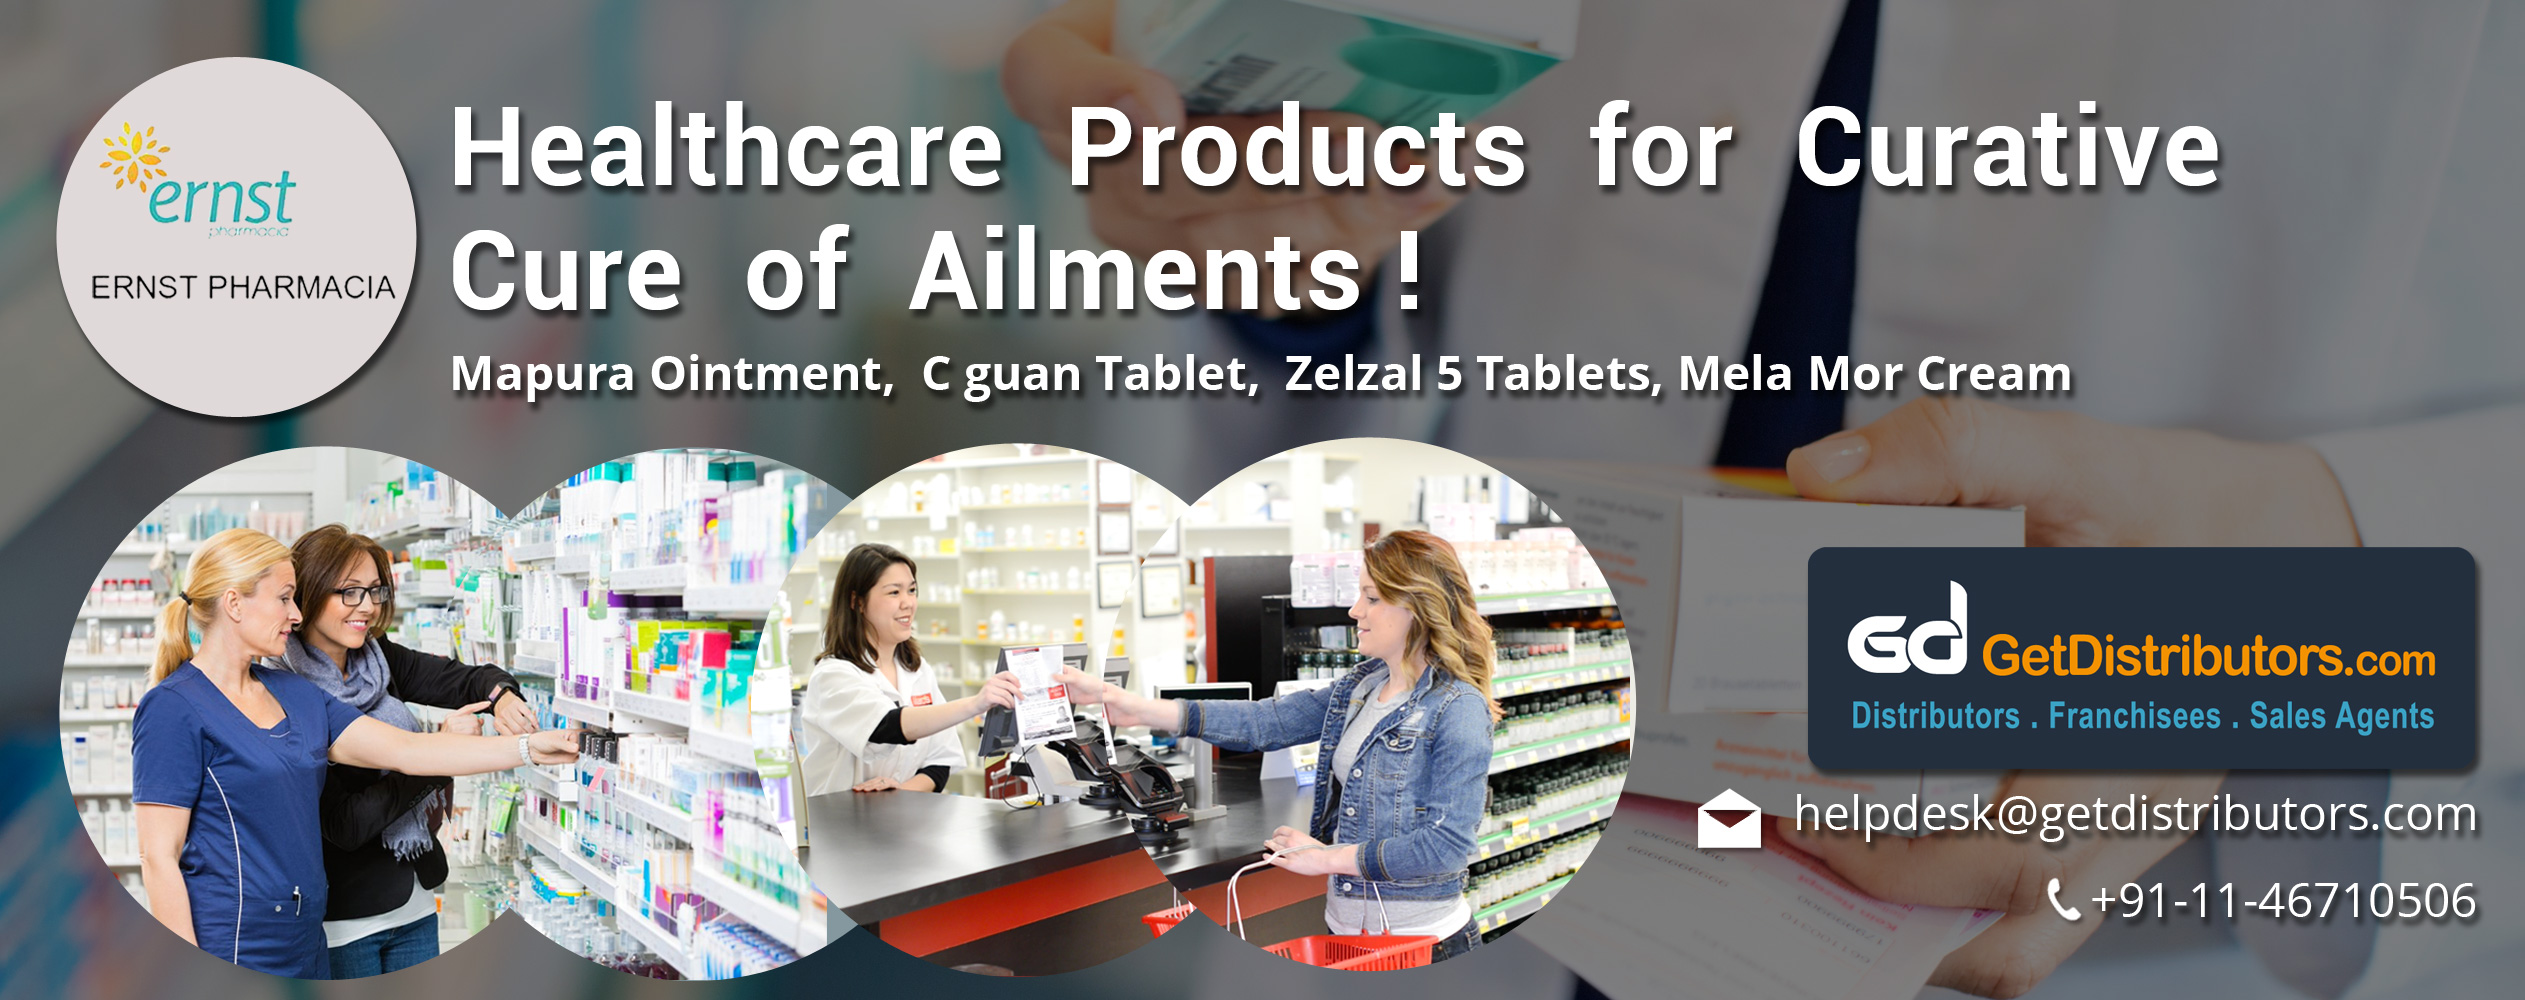 Healthcare Products for Curative Cure of Ailments